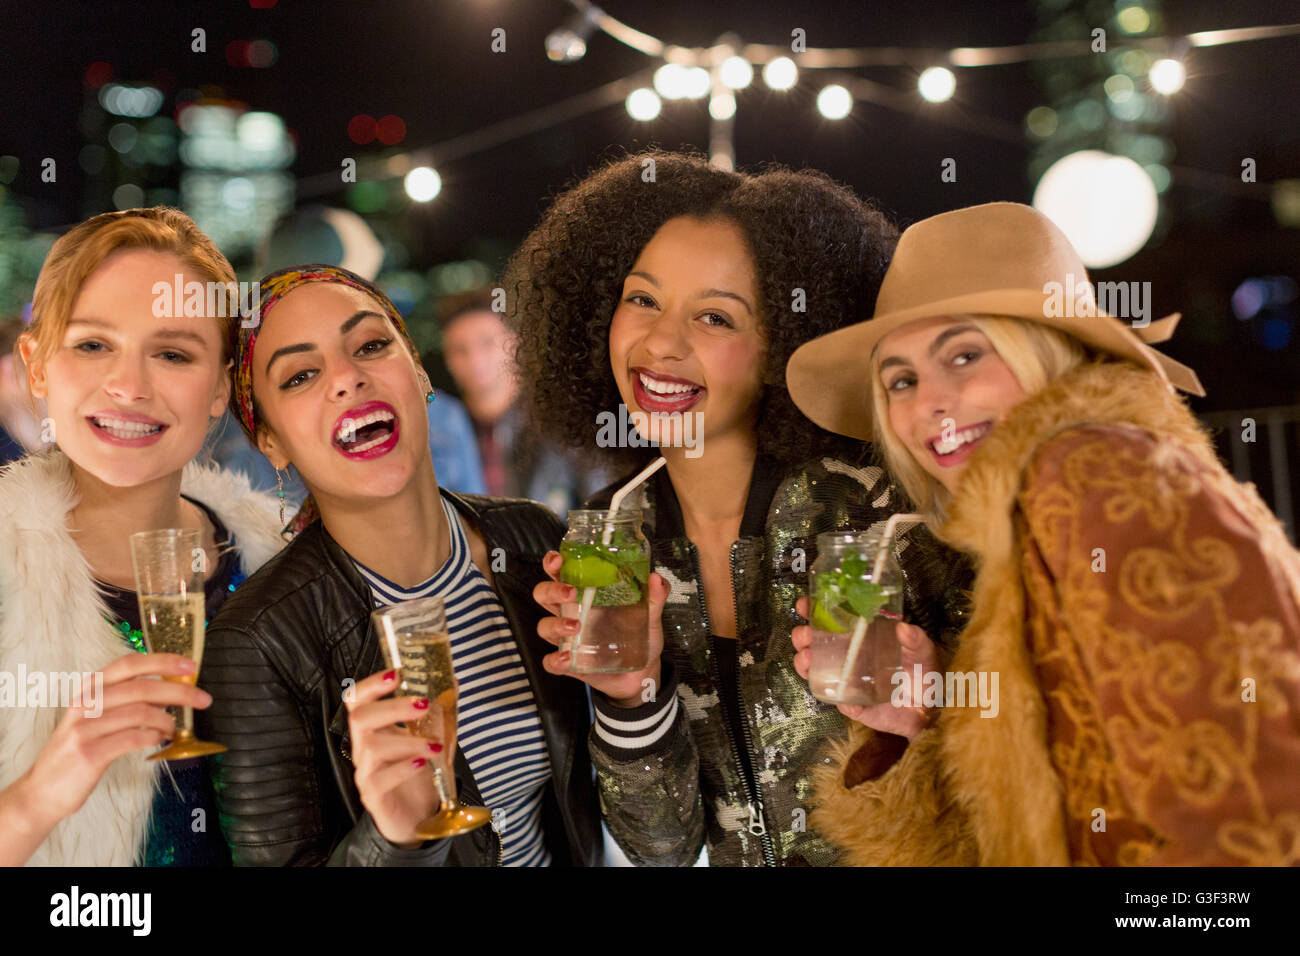 Portrait enthusiastic young women drinking cocktails at party - Stock Image